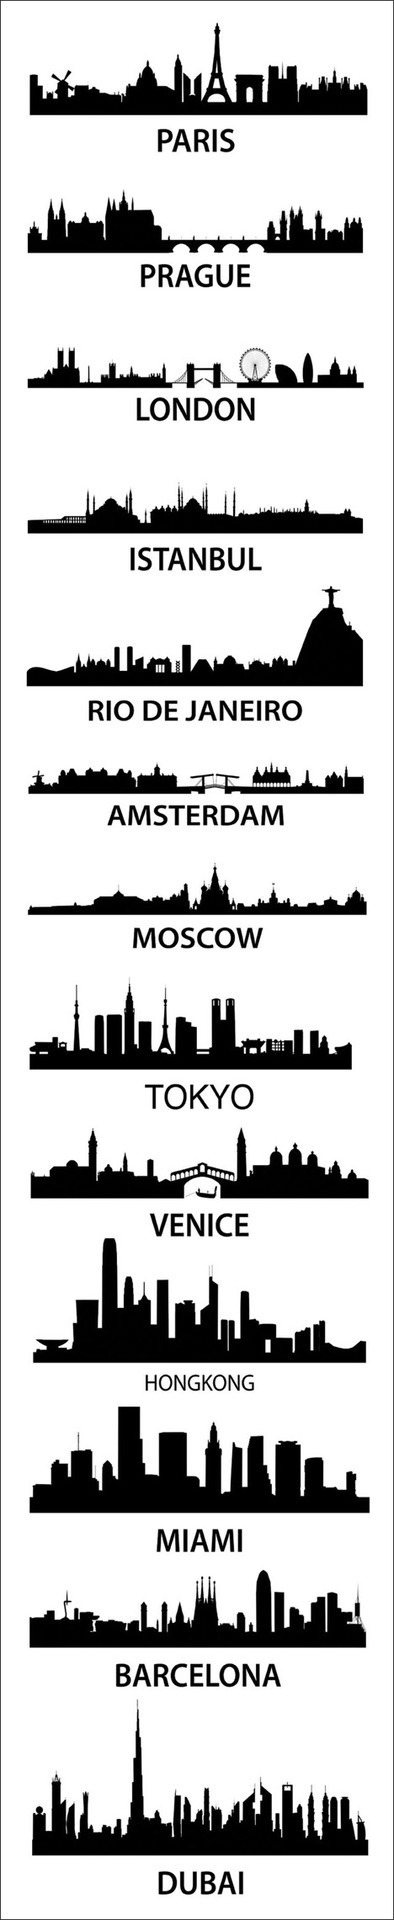 Iconic Skylines | Geography Education | Globicate - Global Education for a New Generation | Scoop.it